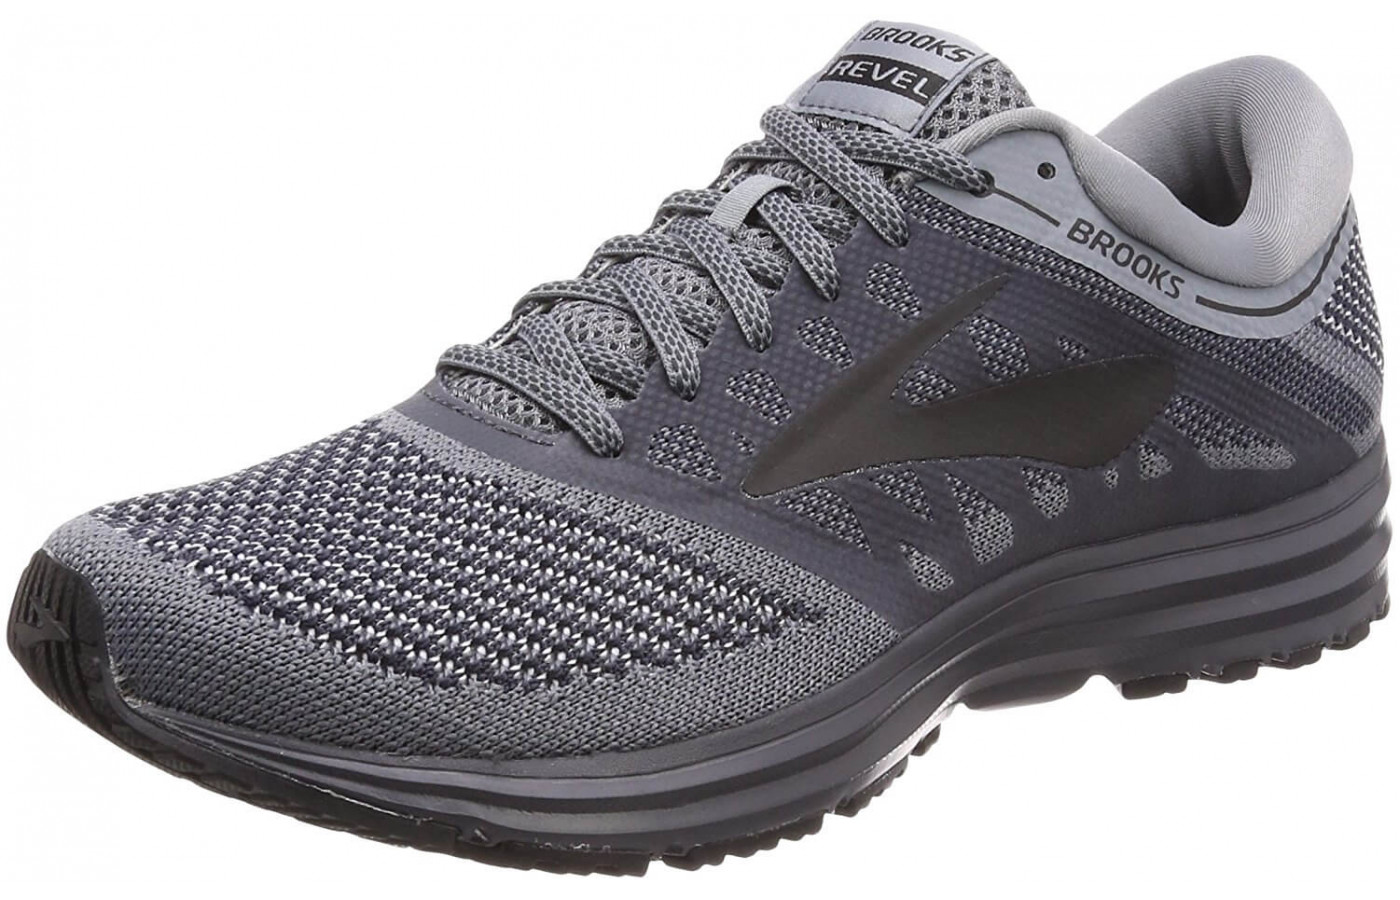 5b1c3a870d6 Brooks Revel Reviewed - To Buy or Not in May 2019